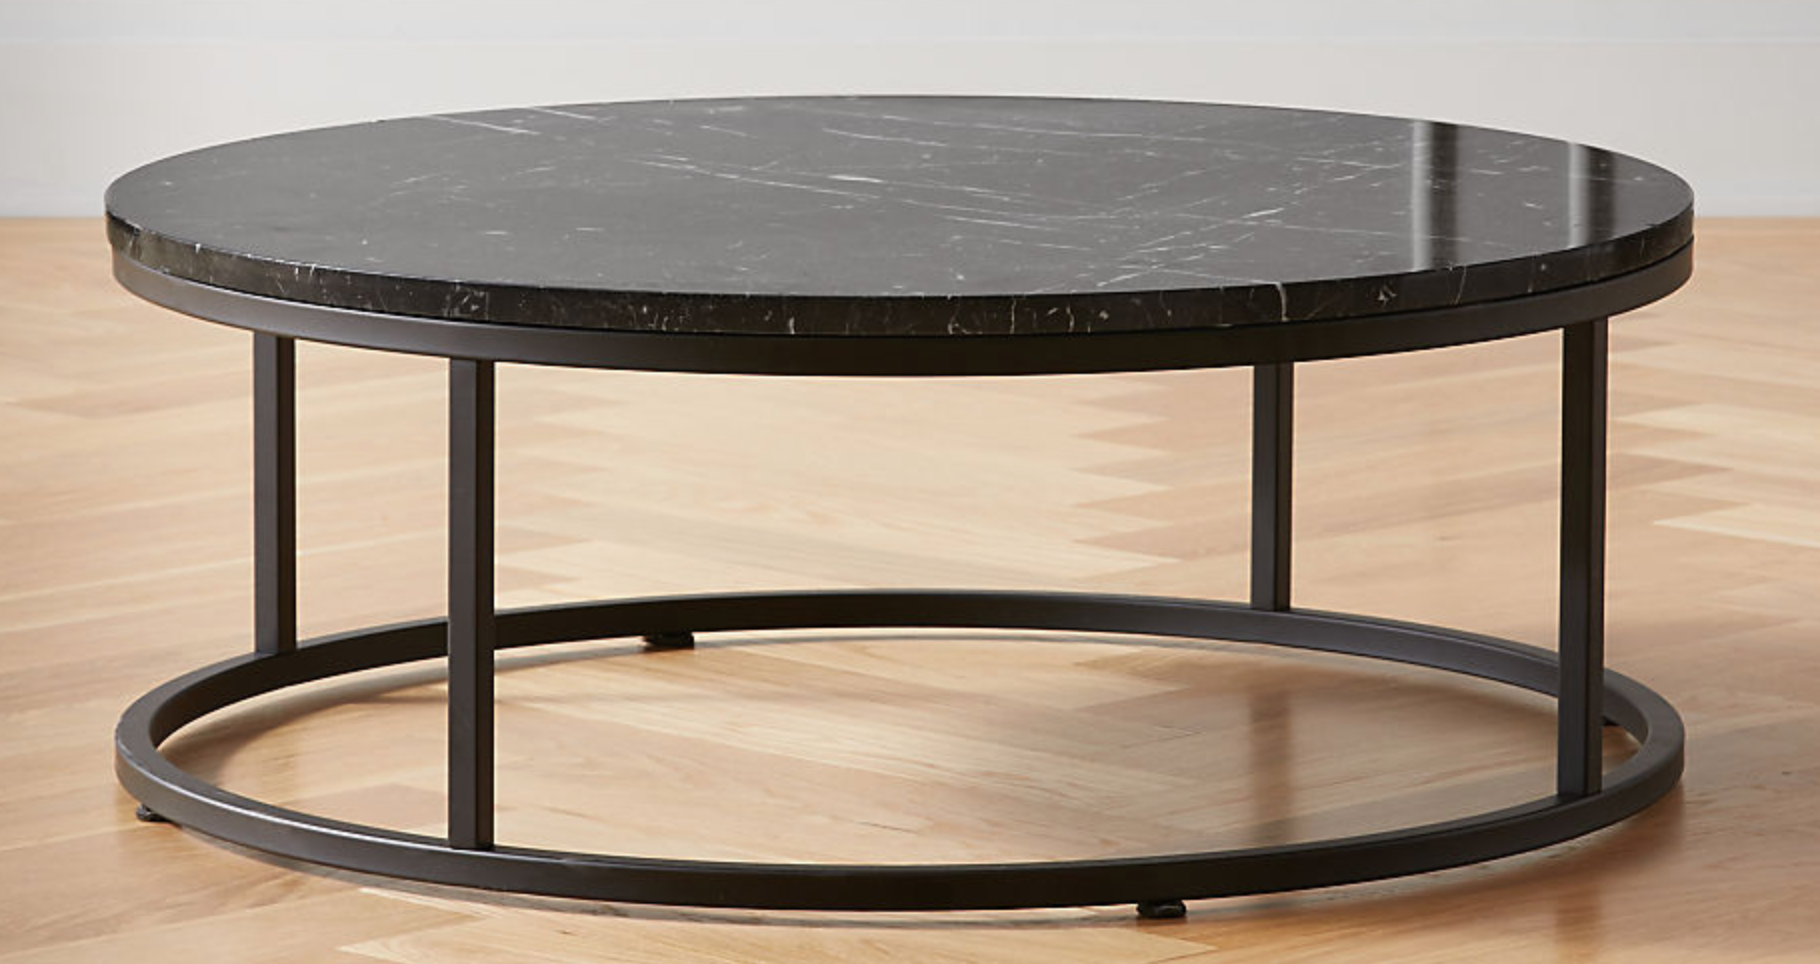 Smart Round Black Marble Coffee Table Reviews Cb2 Marble Coffee Table Coffee Table Black Marble Coffee Table [ 964 x 1820 Pixel ]